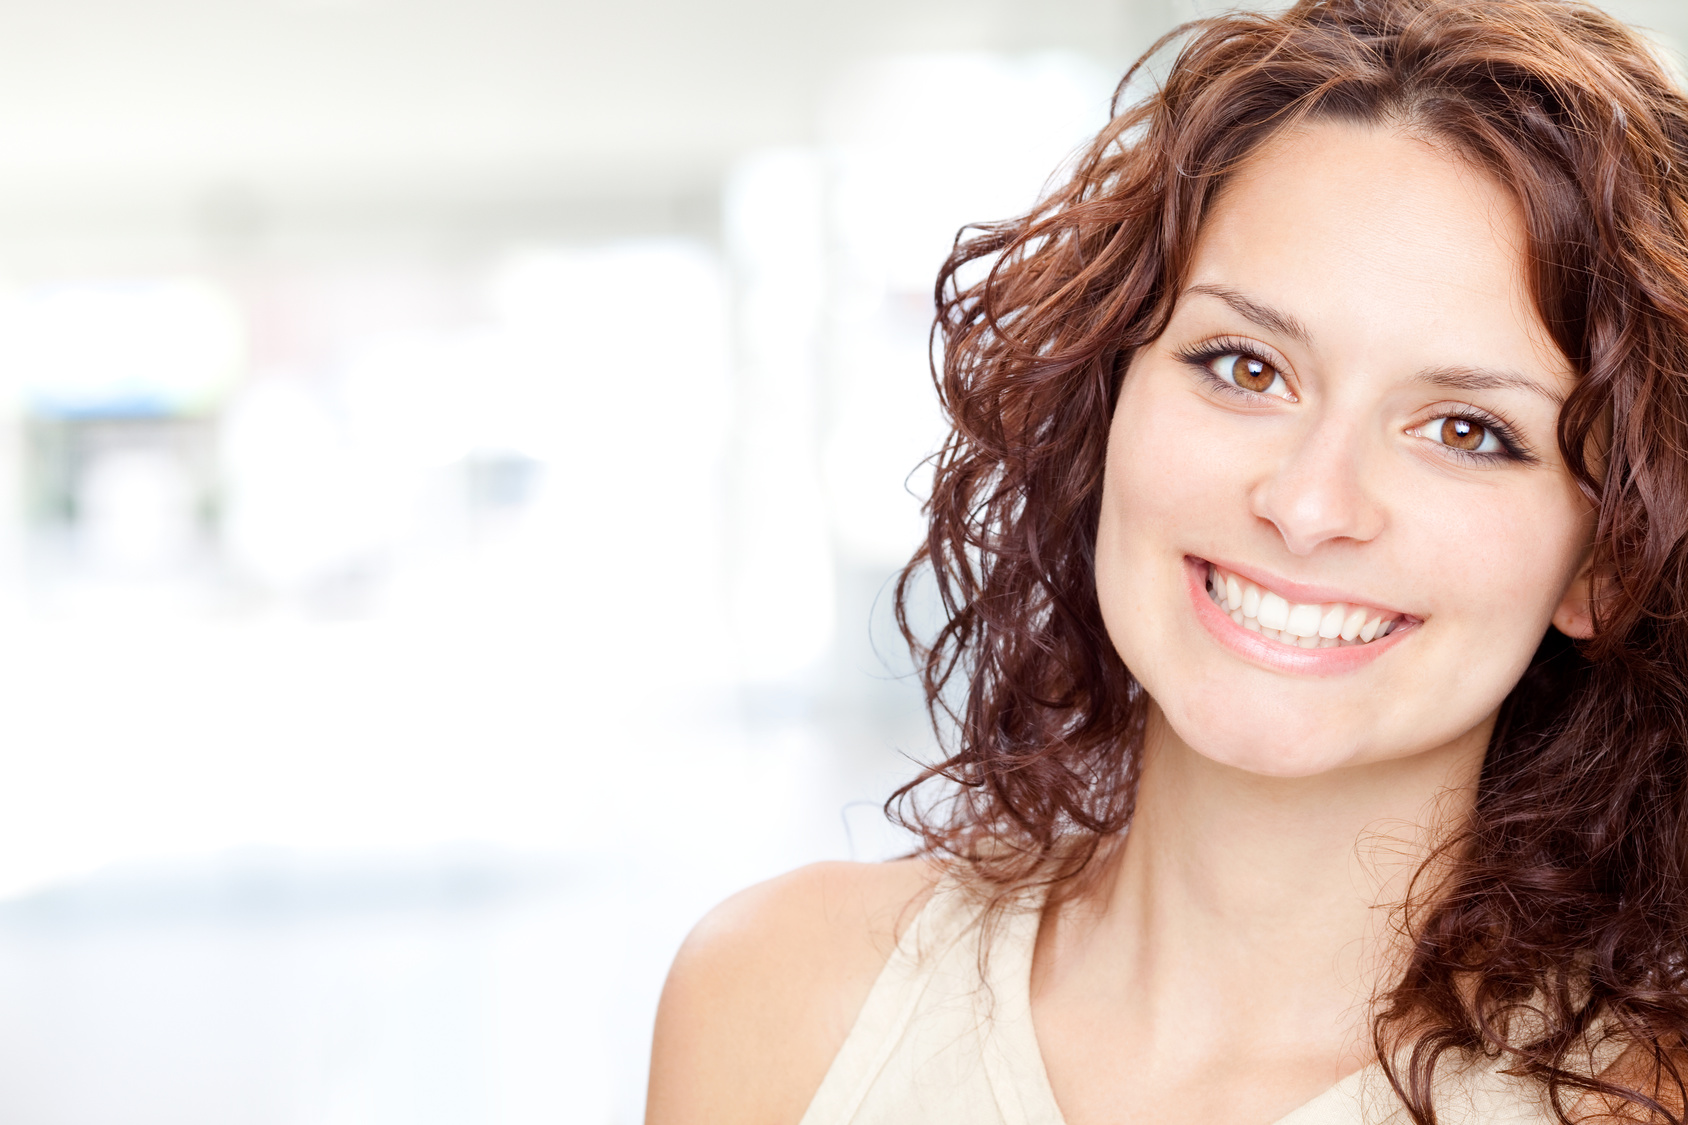 Smile Designing - Making Your Better Smile To The Best